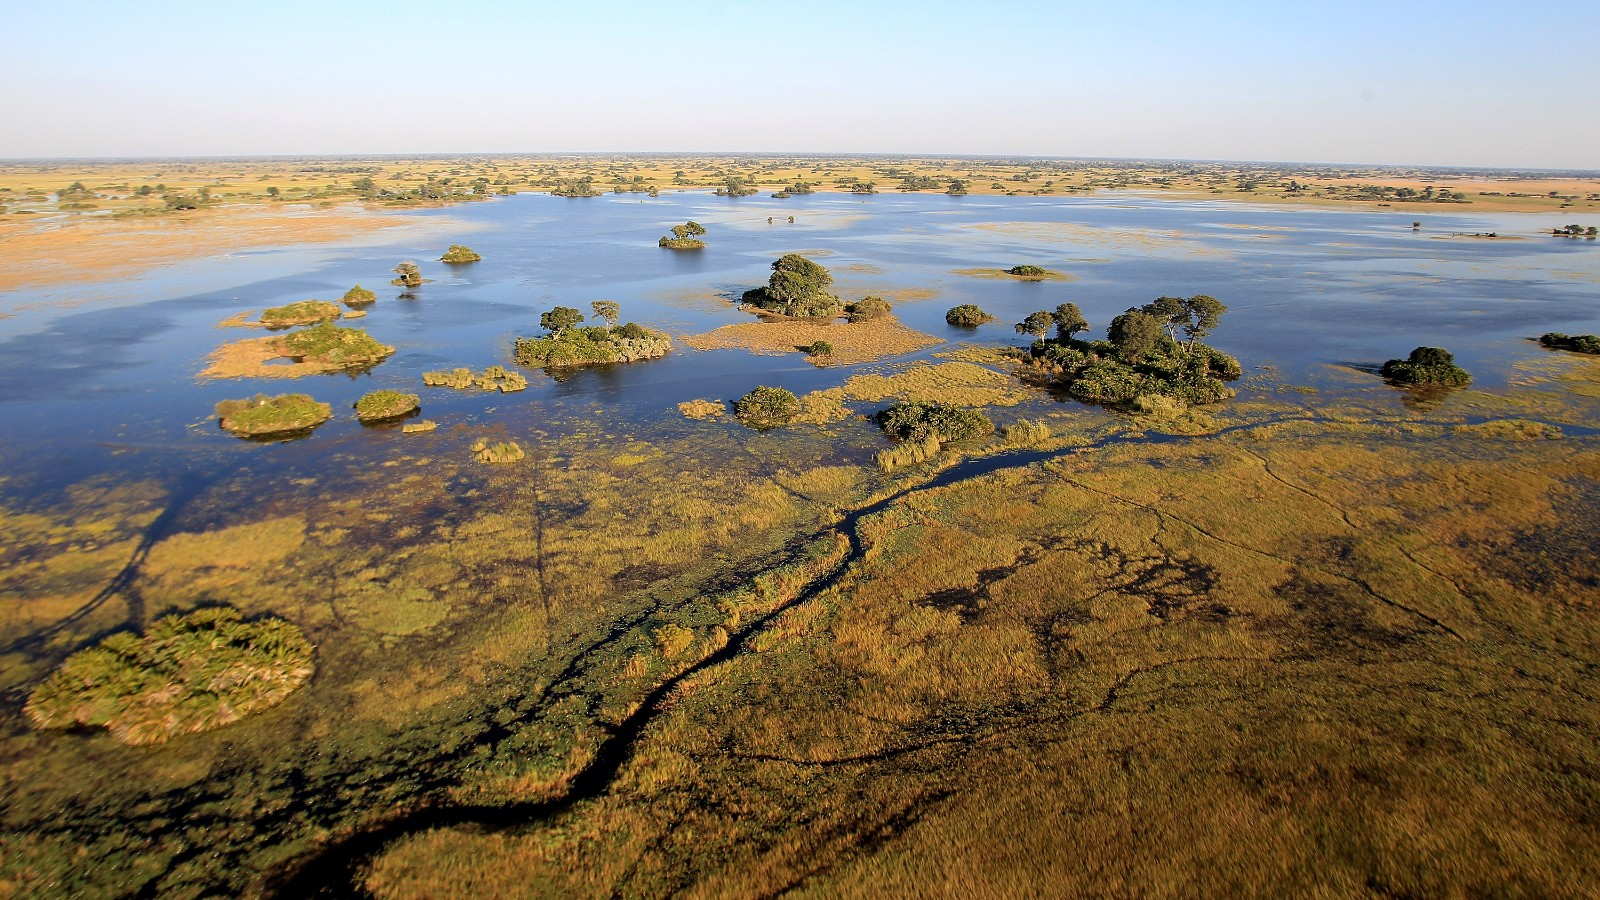 MAUN, BOTSWANA - JUNE 18:  The Okavango delta is seen from the air outside Jao Luxury Safari Camp on June 18, 2010 in Maun, Botswana. Camps run by Wilderness Safaris such as Jao and Kingspool situated deep in the water land of Botswana's Okavango delta rely on high-end luxury tourism with rooms costing upwards of USD 800 per person, per night in peak season. It has always been the policy of Botswana to concentrate on low volume, high value tourism, However with the recent economic downturn many of the lodges are suffering with a lack of bookings. The Okavango Delta (or Okavango Swamp), in Botswana, is the world's largest inland delta and is home to an abundance of wildlife.  (Photo by Chris Jackson/Getty Images)